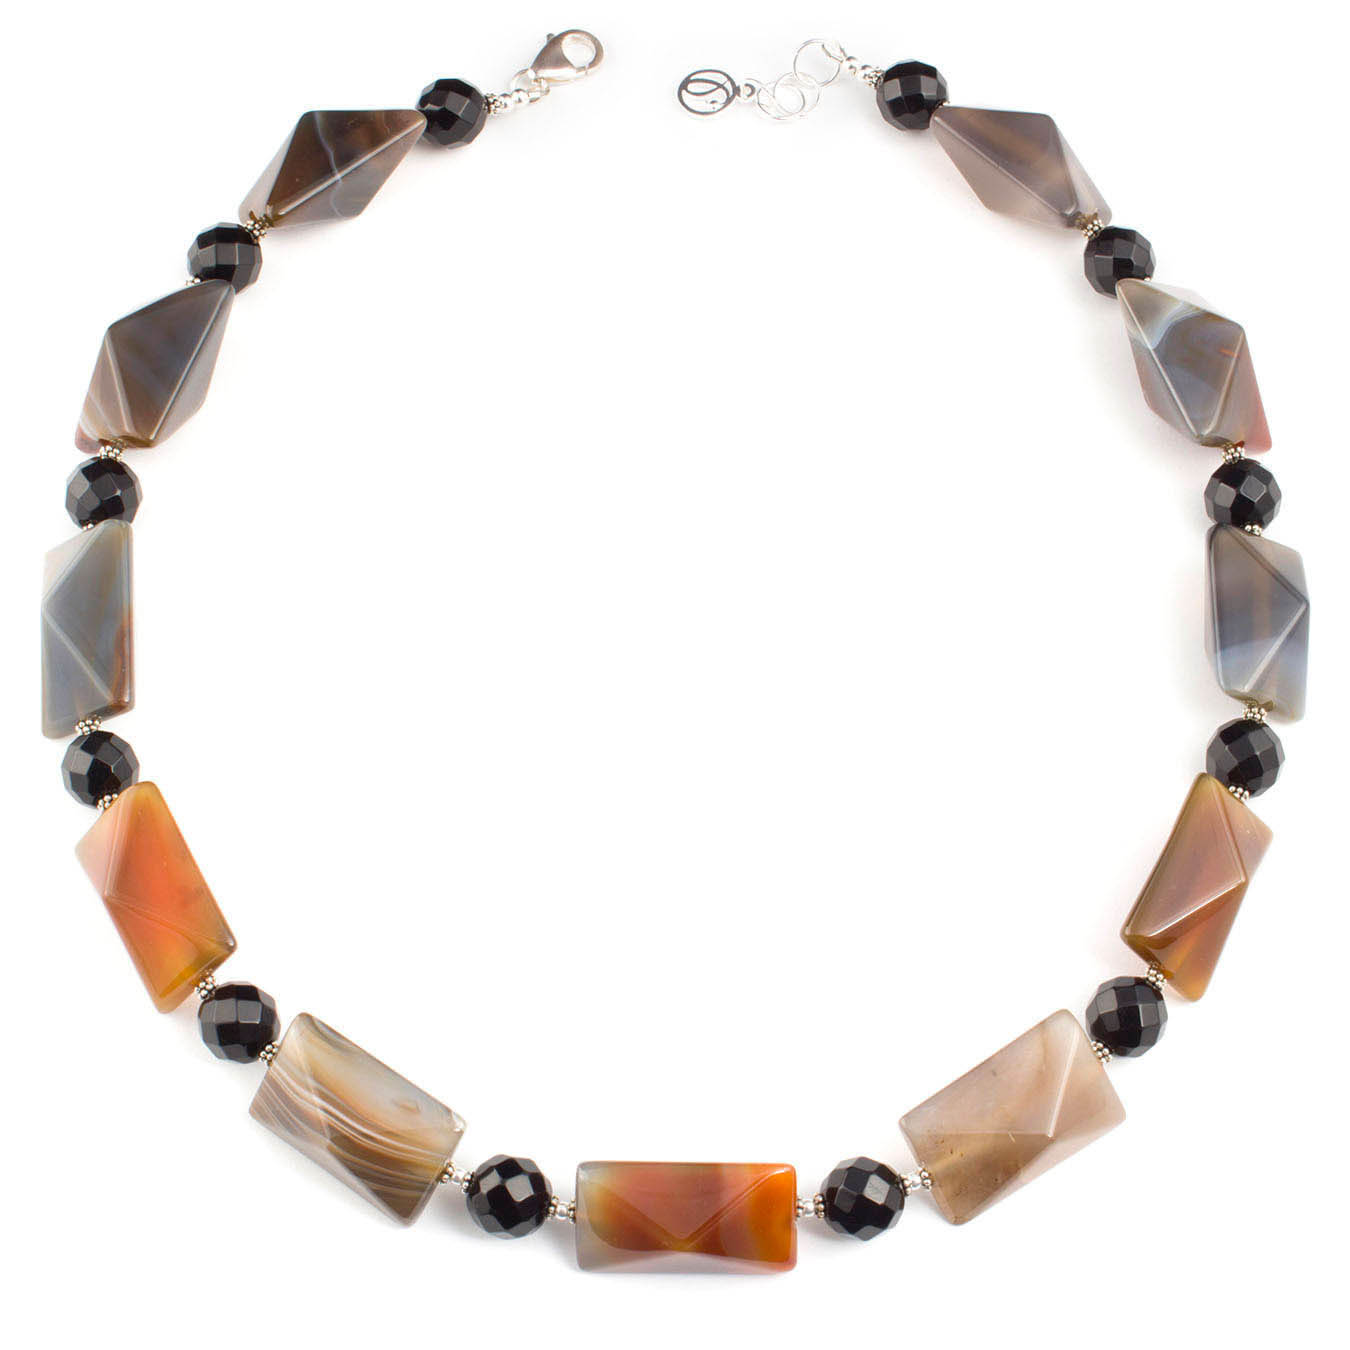 Handmade statement jewelry necklace made of Botswana and black agate